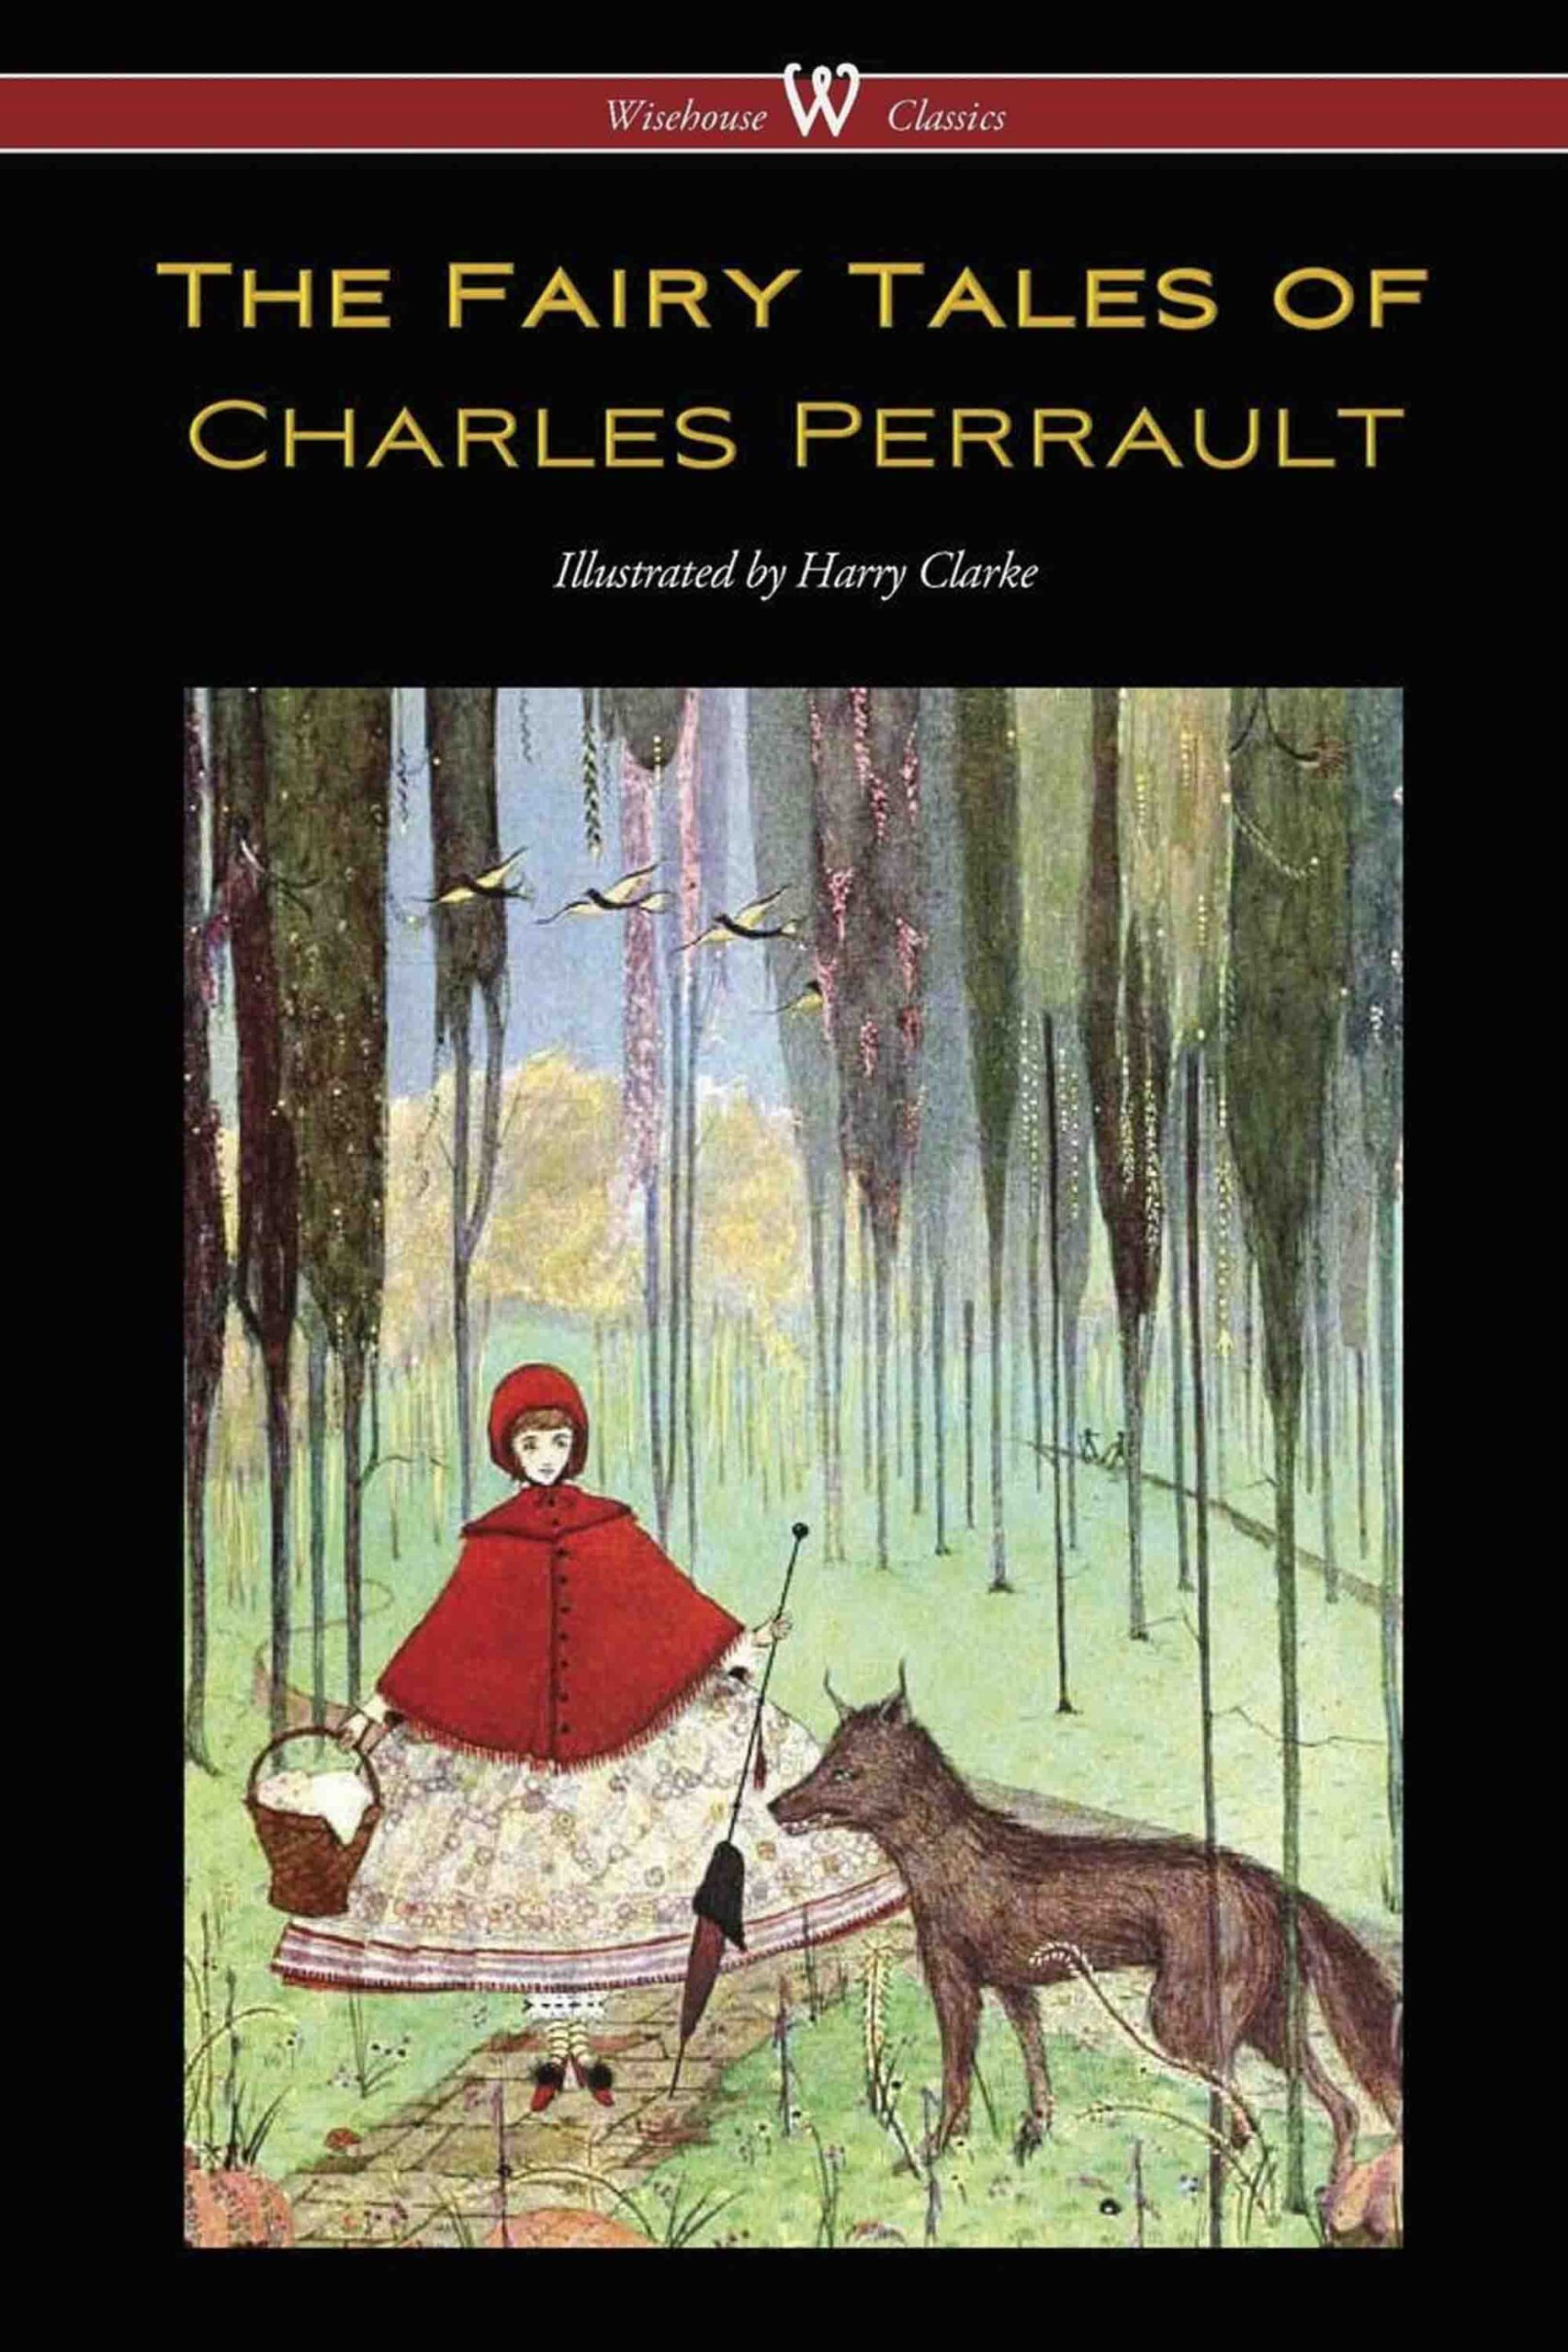 The Fairy Tales of Charles Perrault (Wisehouse Classics Edition – with original color illustrations by Harry Clarke)